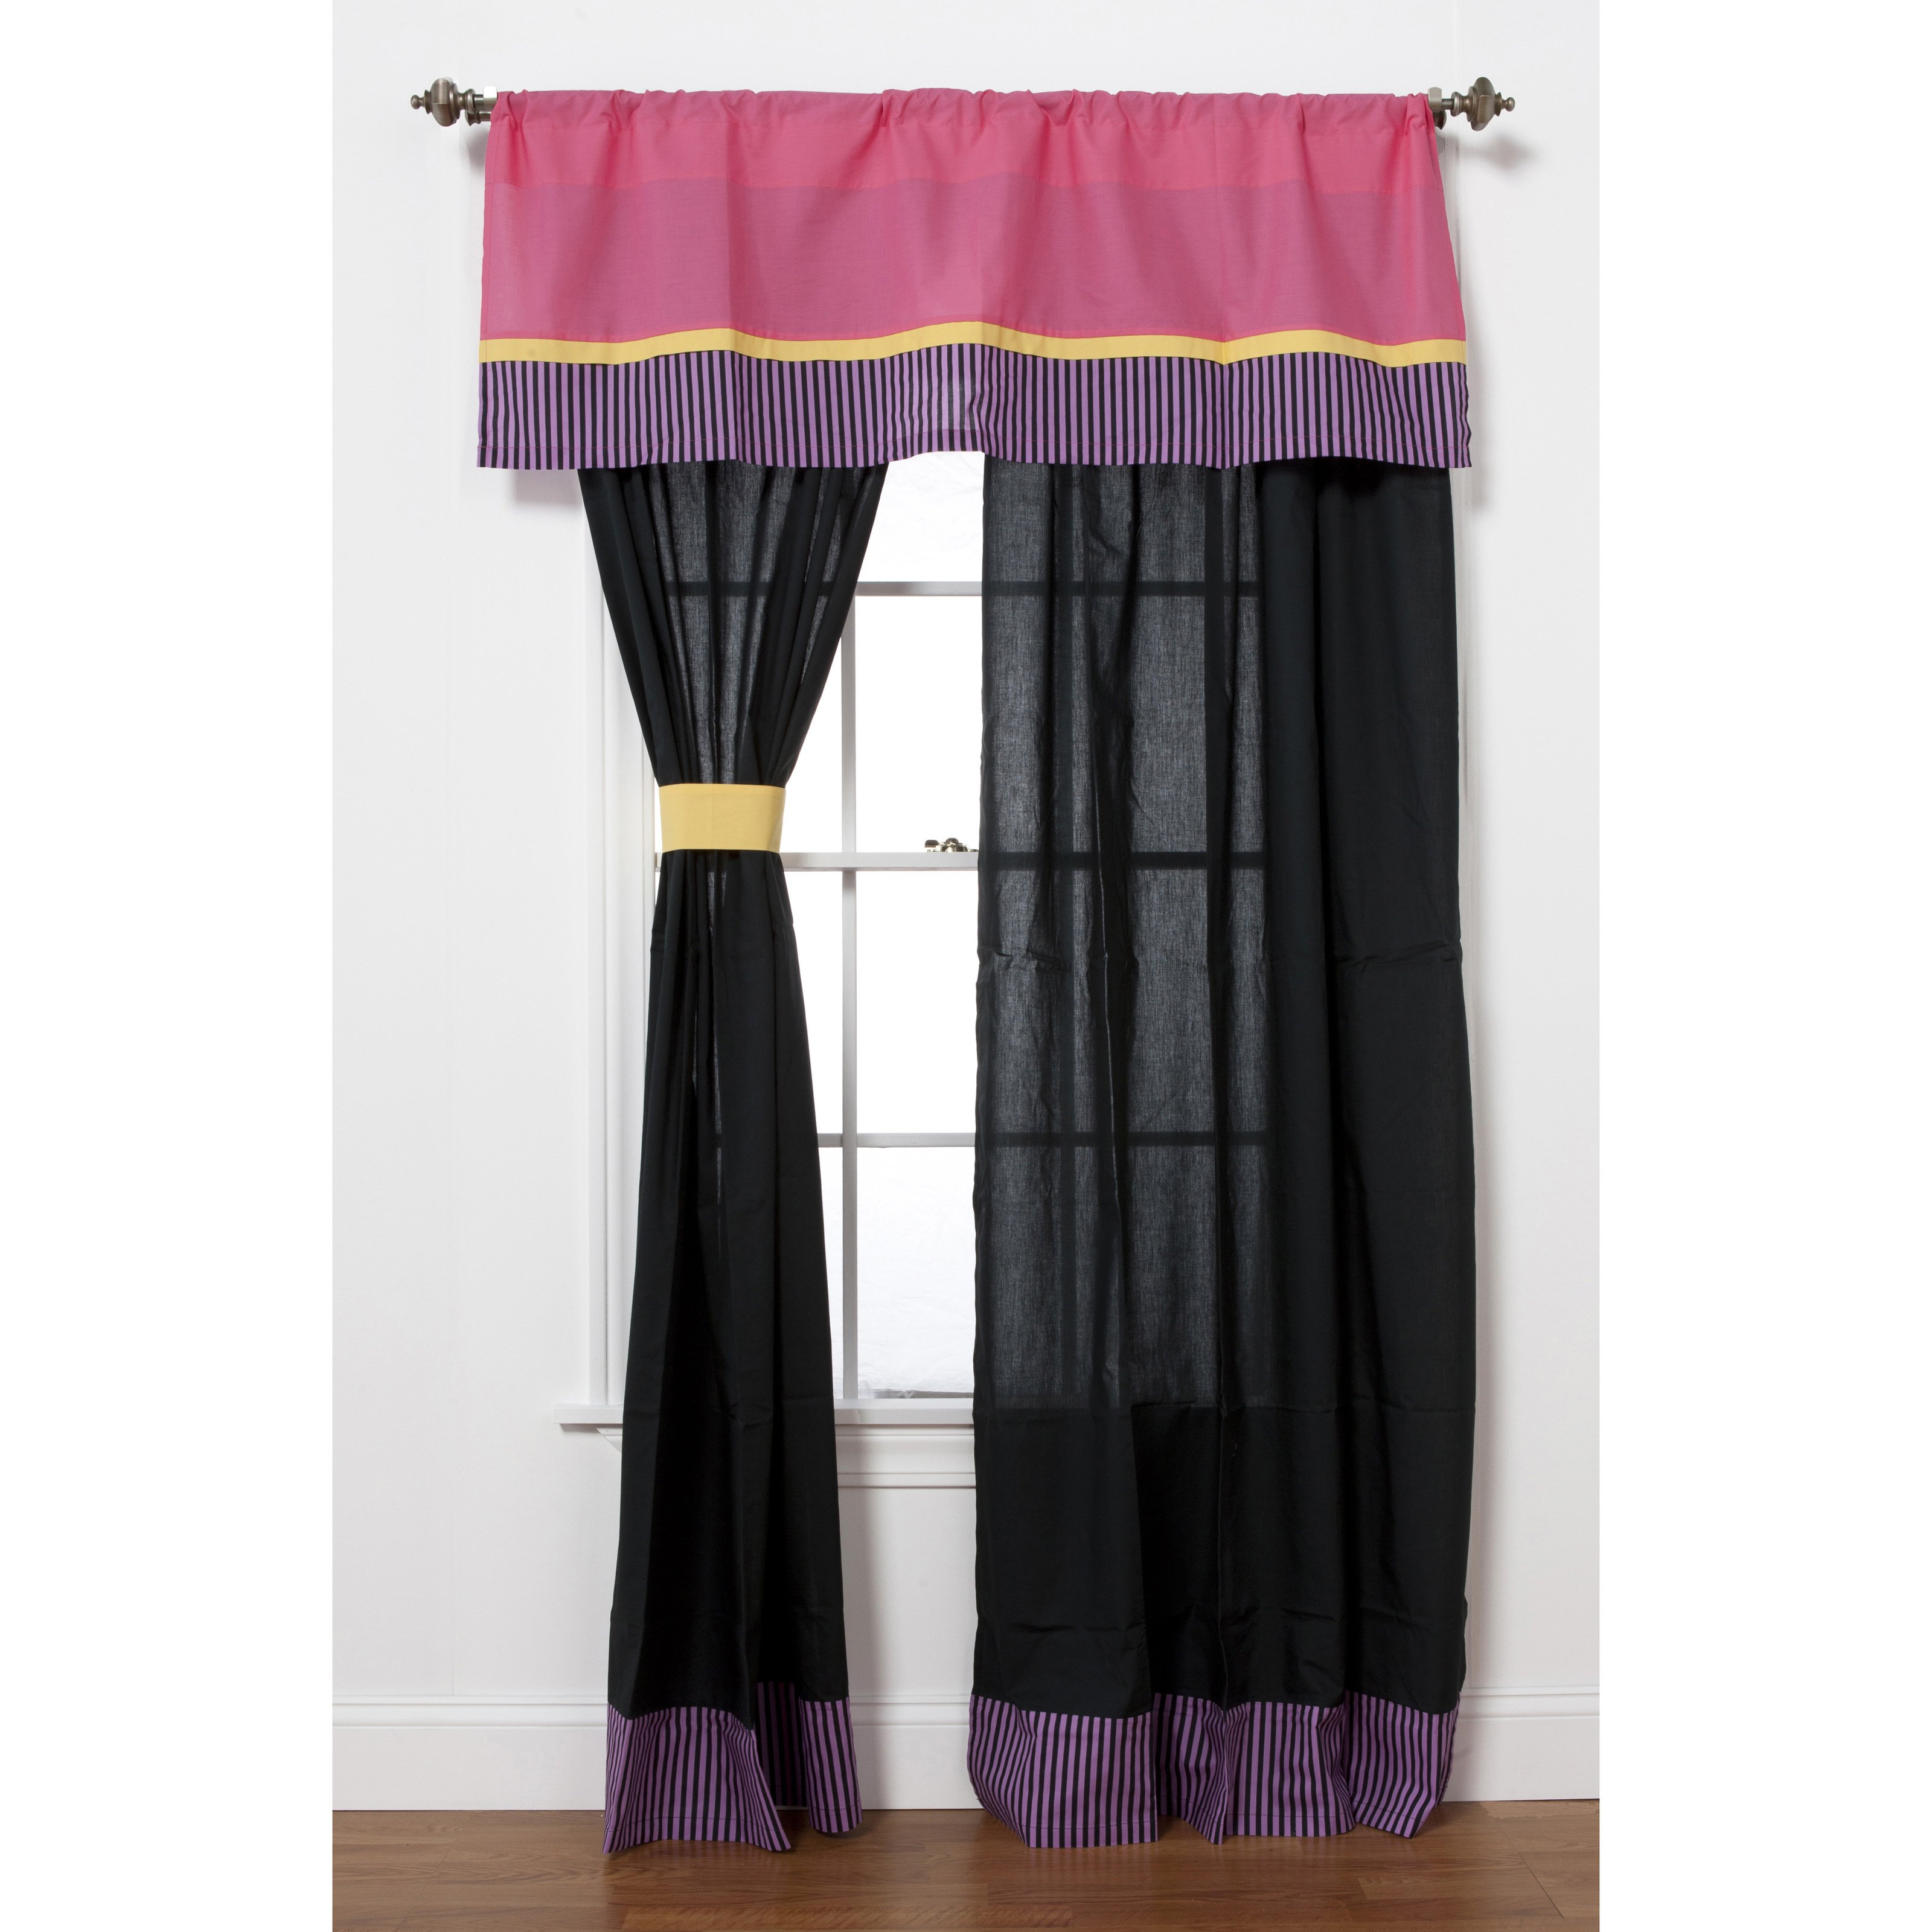 Sassy Shaylee Curtain Panel Pair with Optional Valance